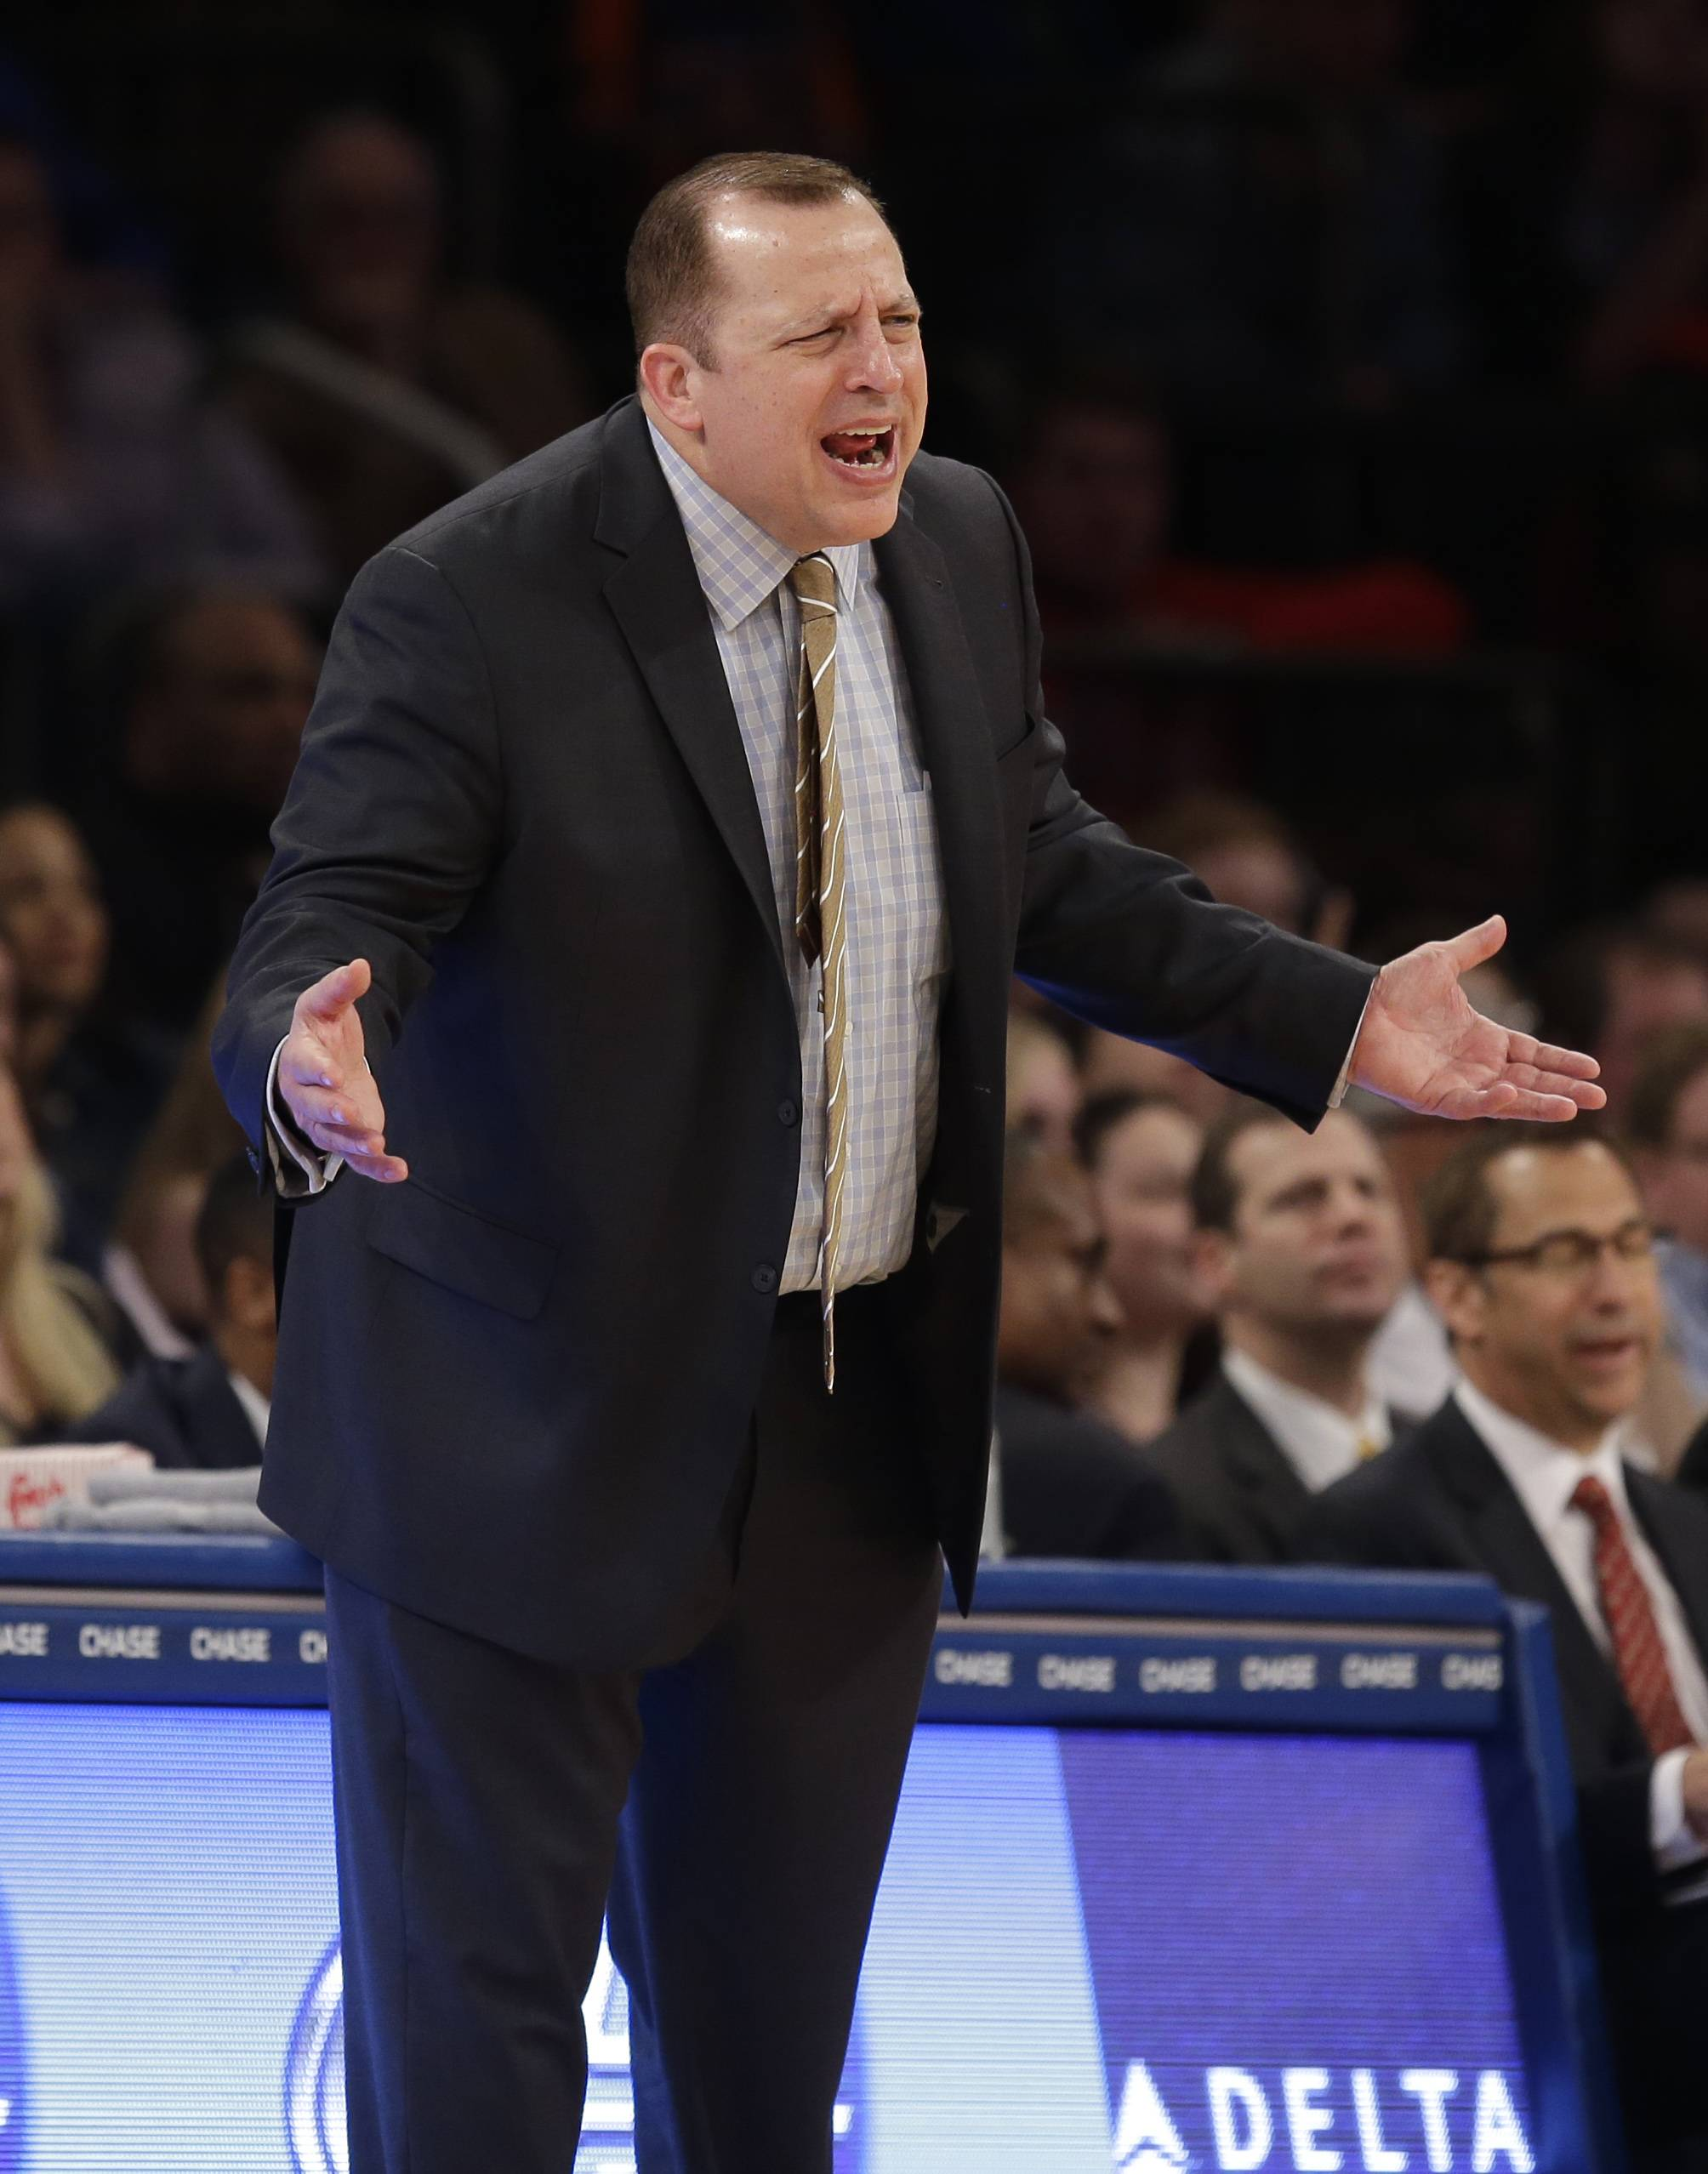 Bulls coach Tom Thibodeau wasn't happy with his team's defense in Sunday night's loss to the Knicks.